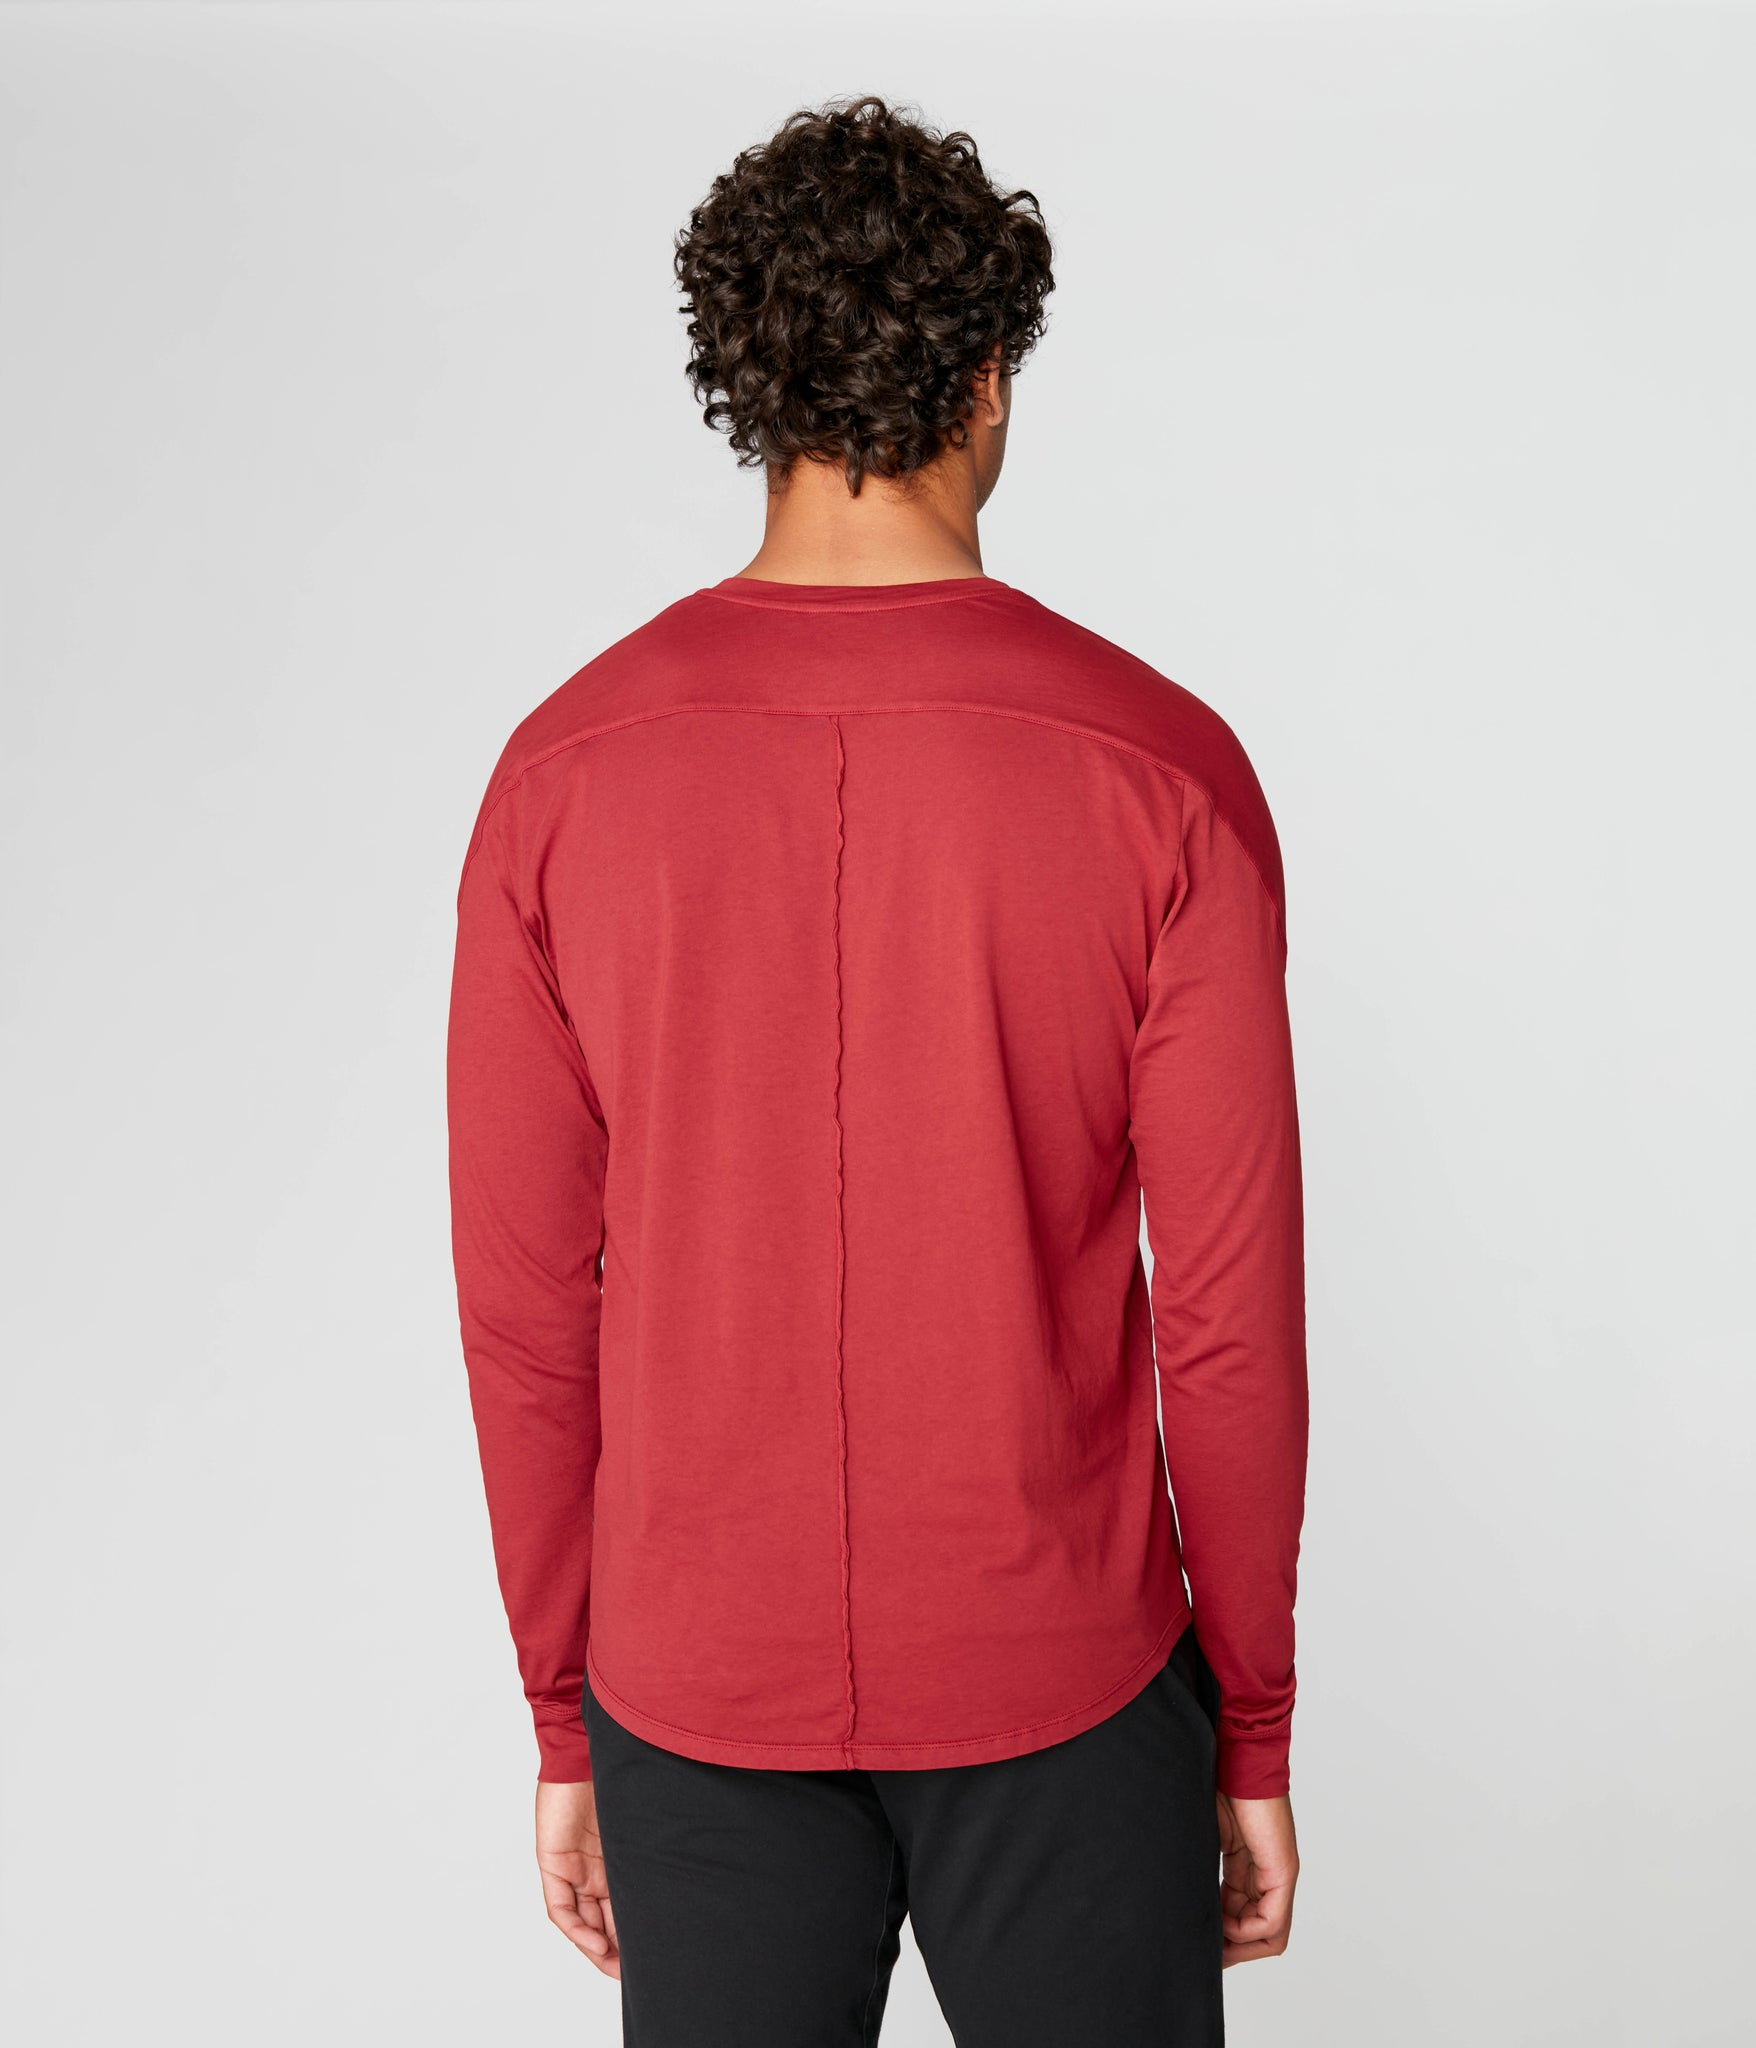 Victory V-Notch in Premium Jersey - Red